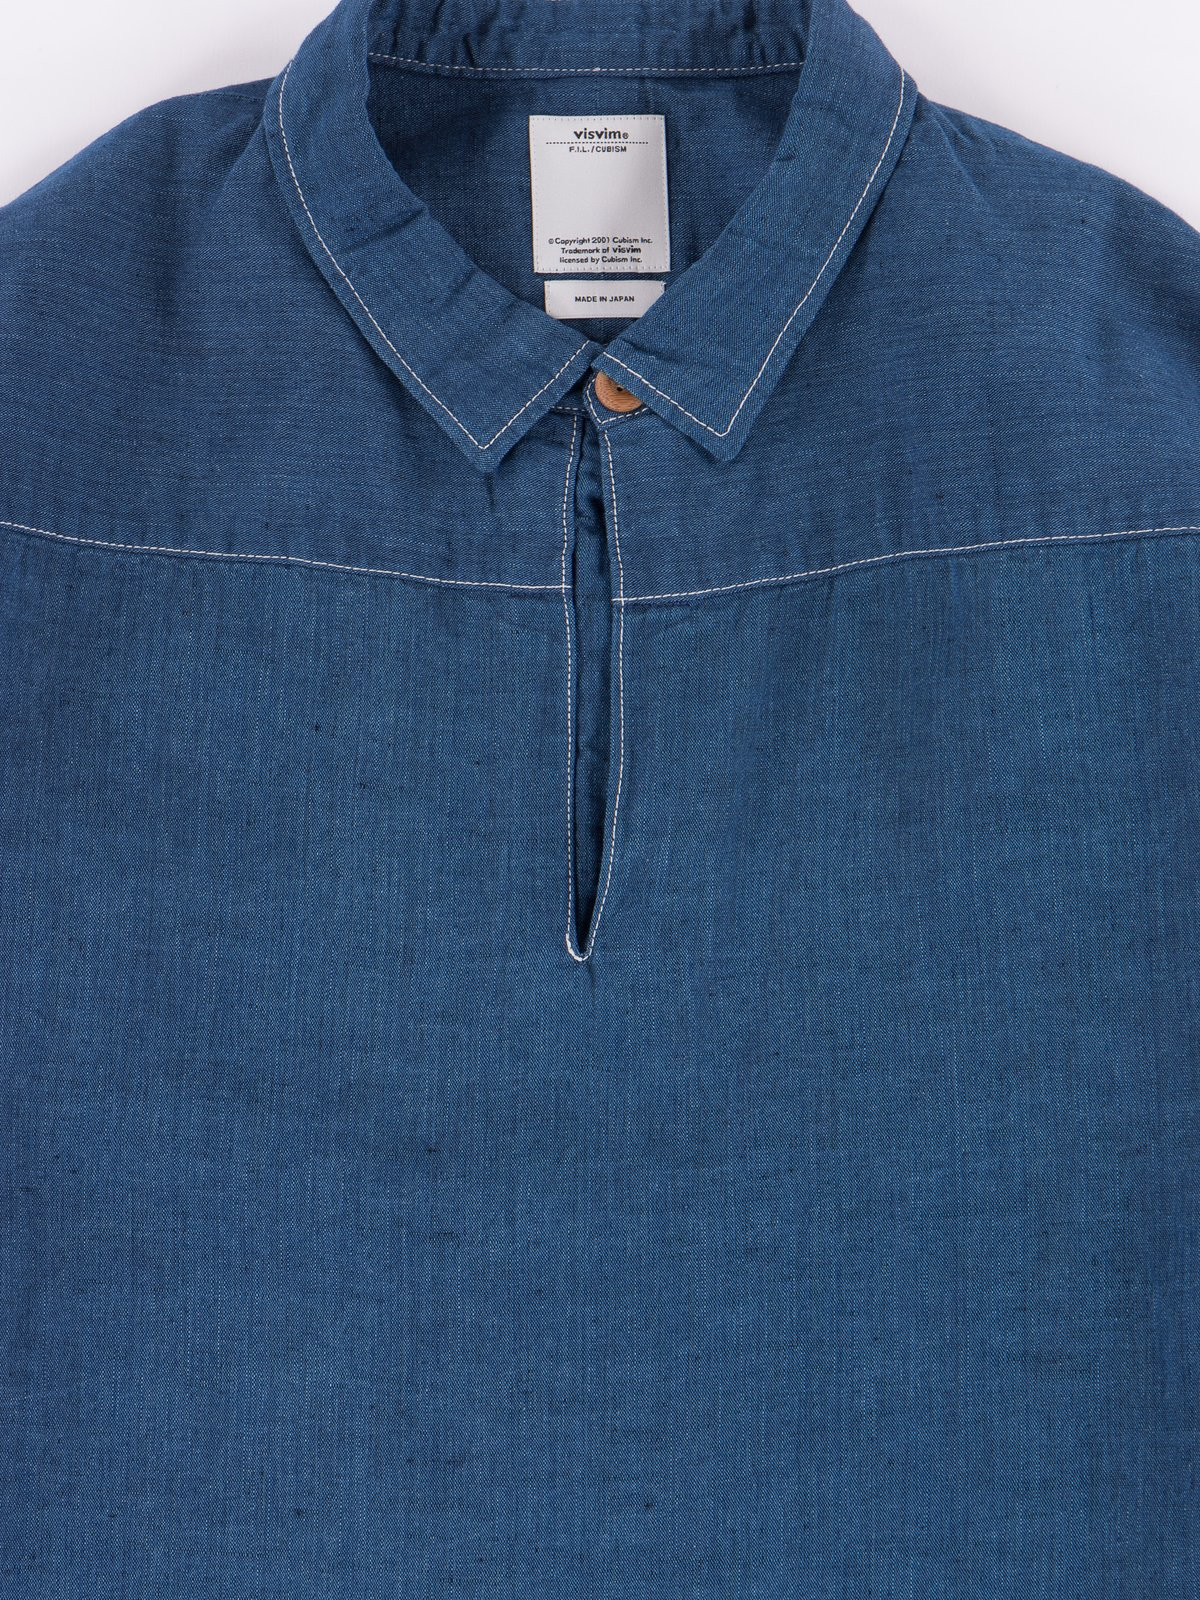 Navy Chambray Kerchief Tunic Shirt - Image 2